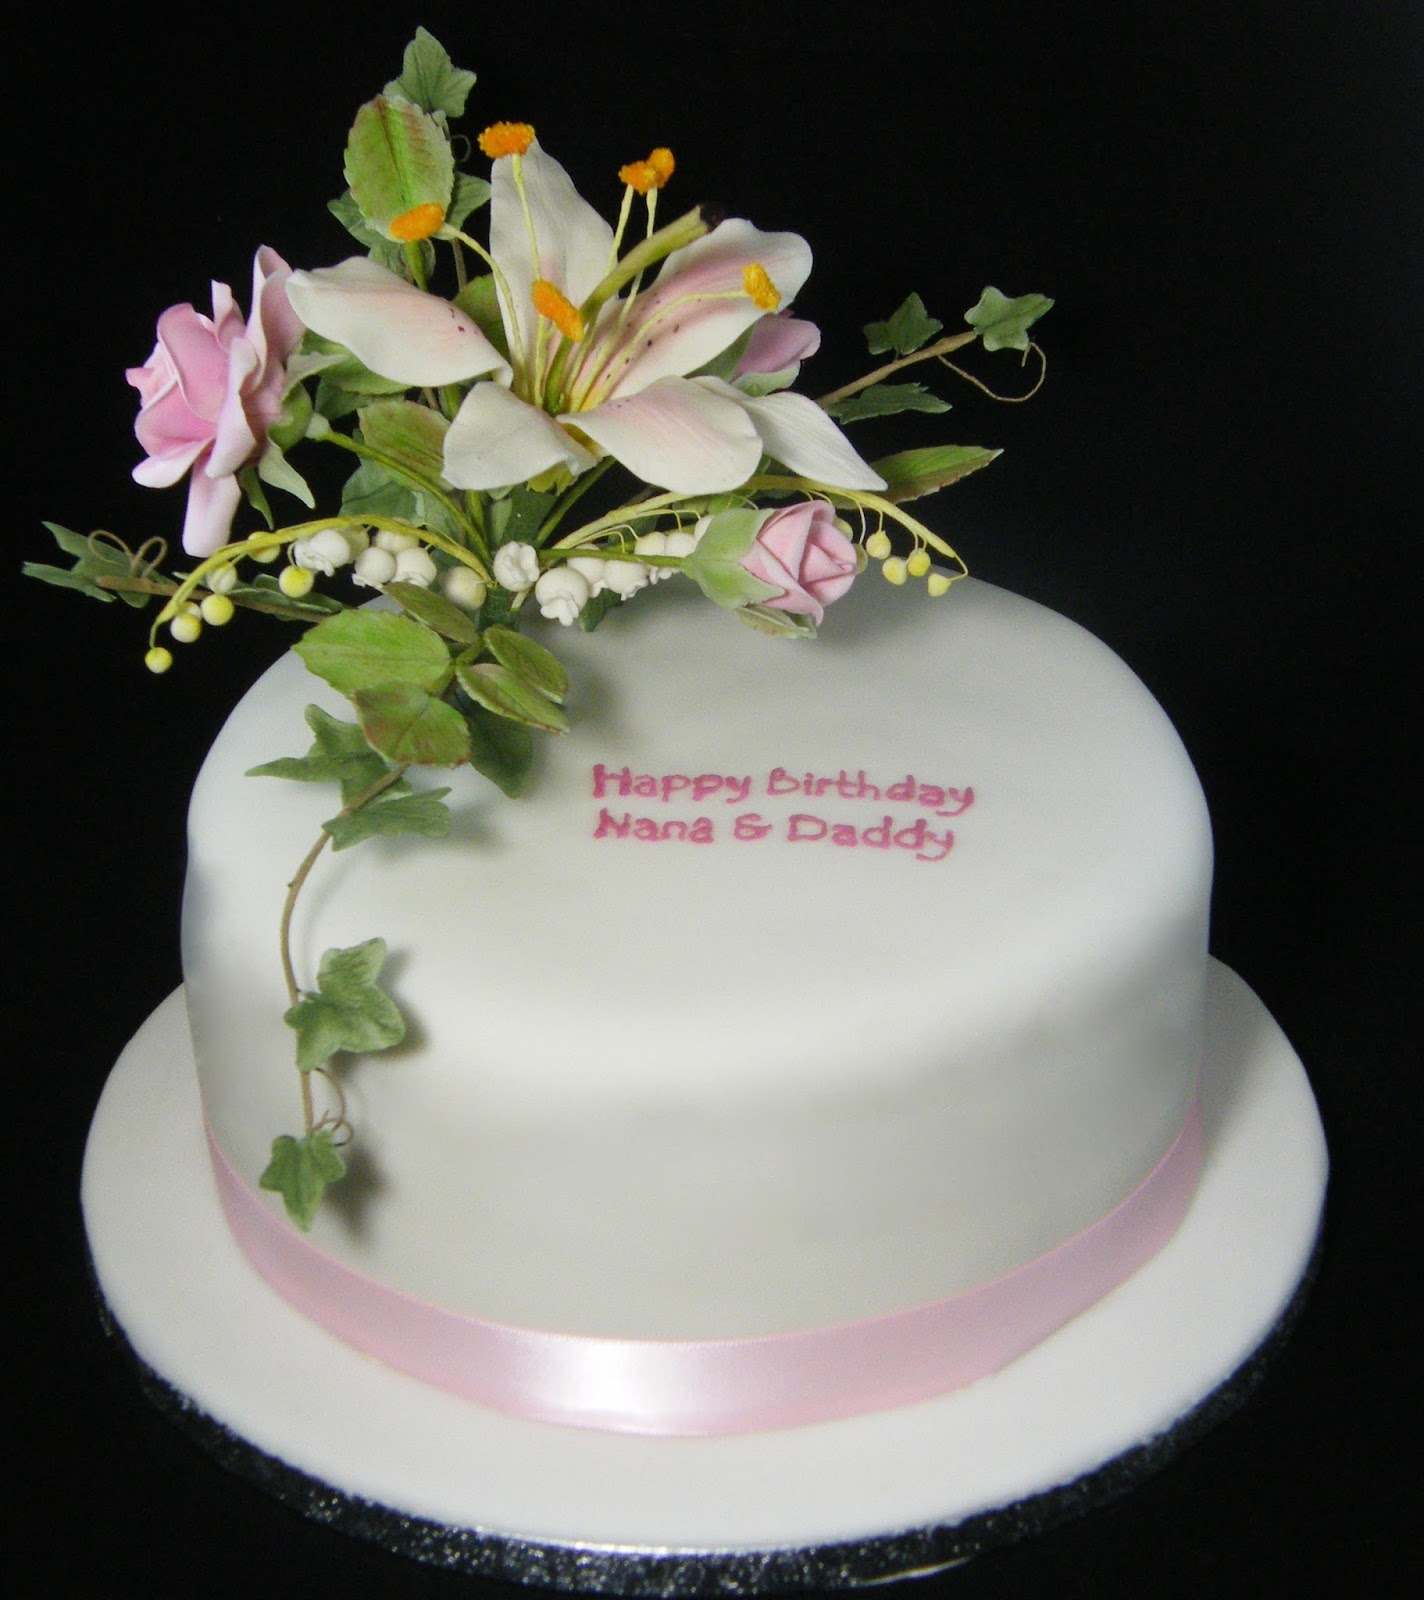 Stargazer Lily Birthday Cake Image Inspiration of Cake and